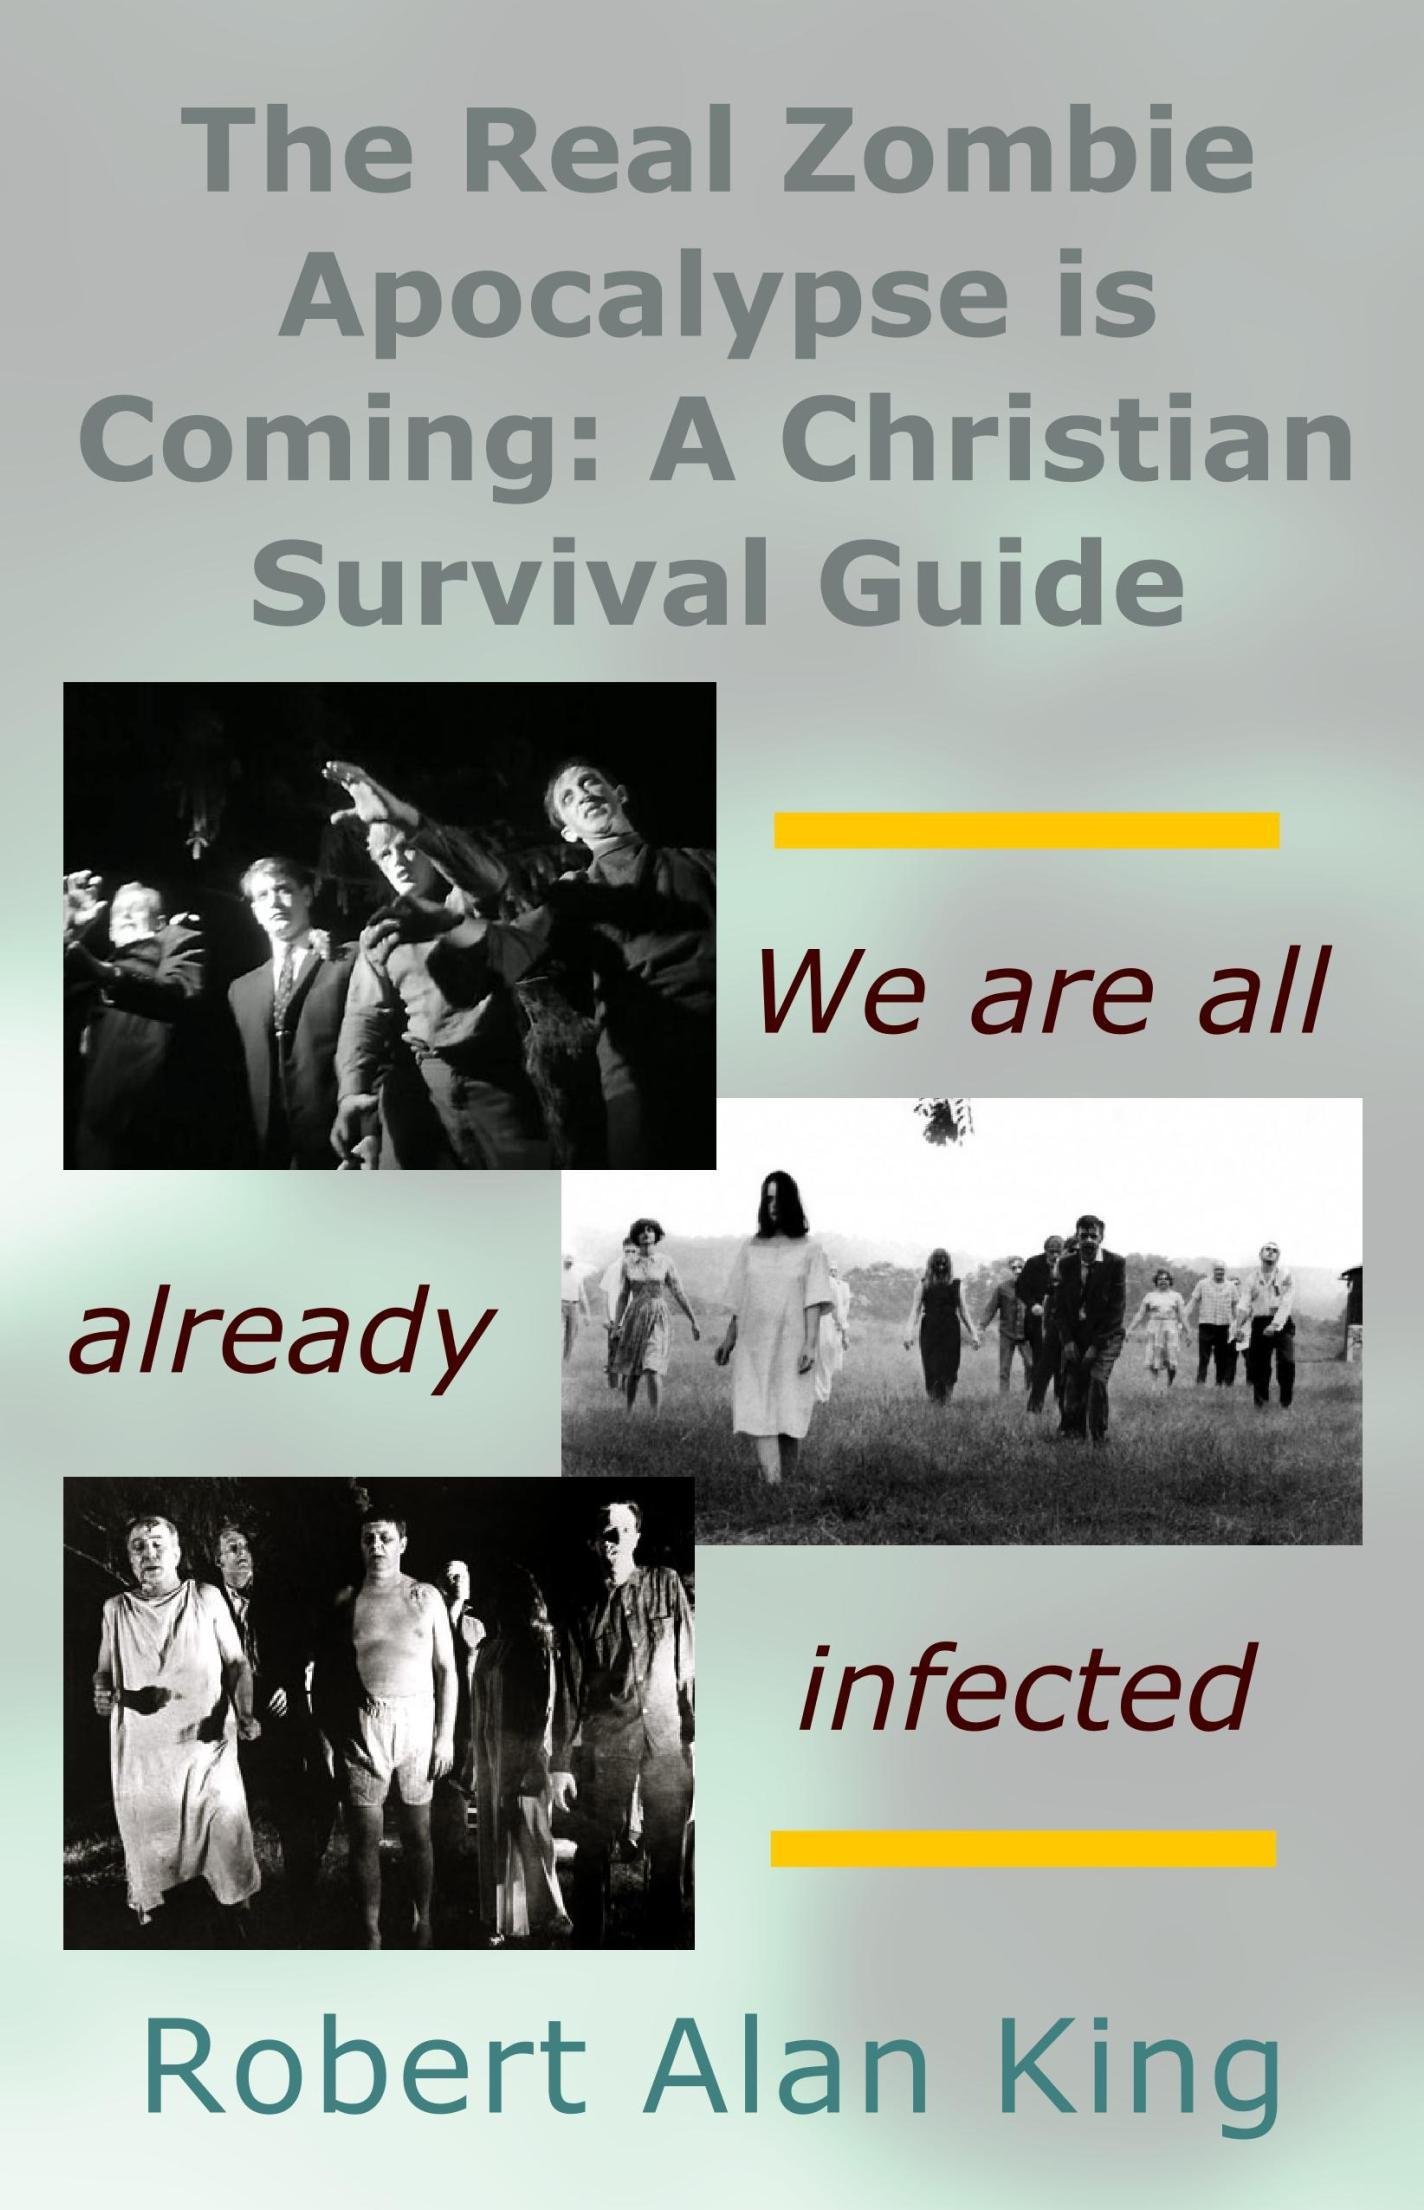 The Real Zombie Apocalypse is Coming: A Christian Survival Guide